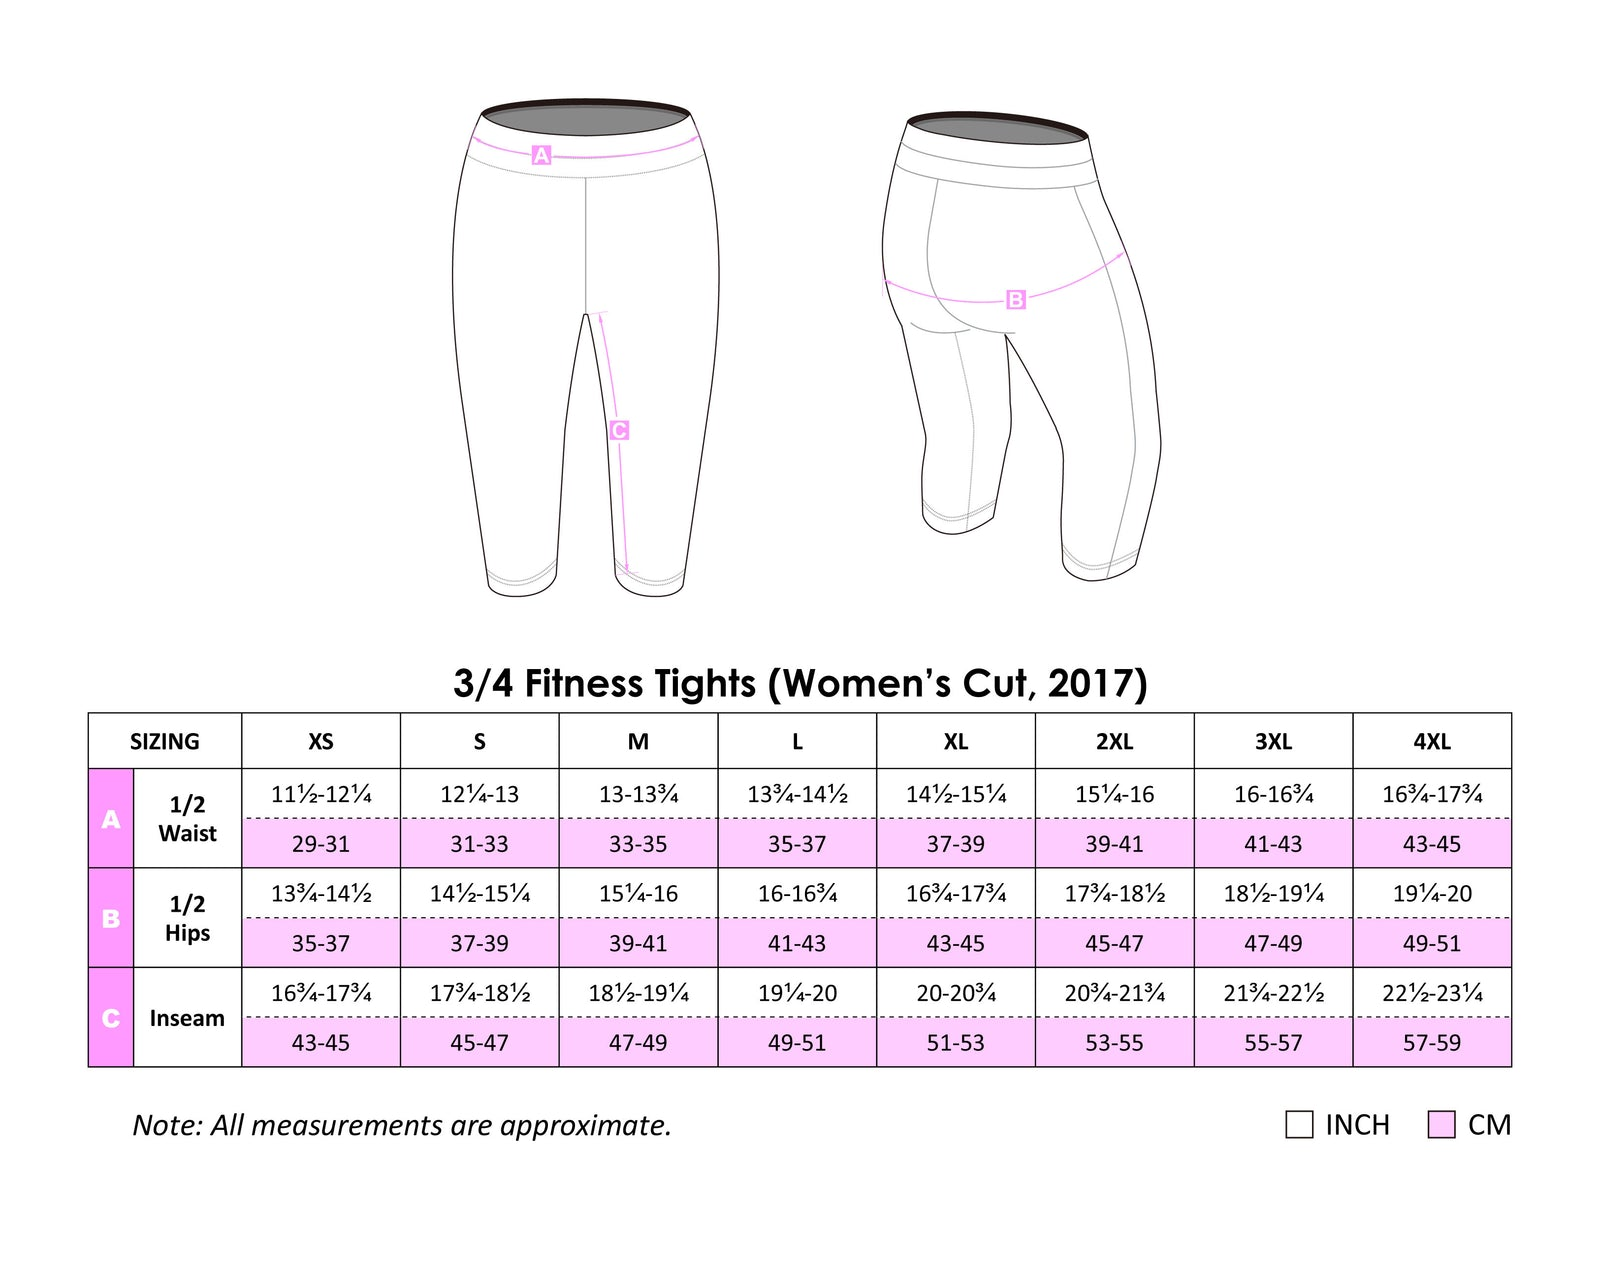 RFDS WOMEN SILVER 3/4 Fitness Tights